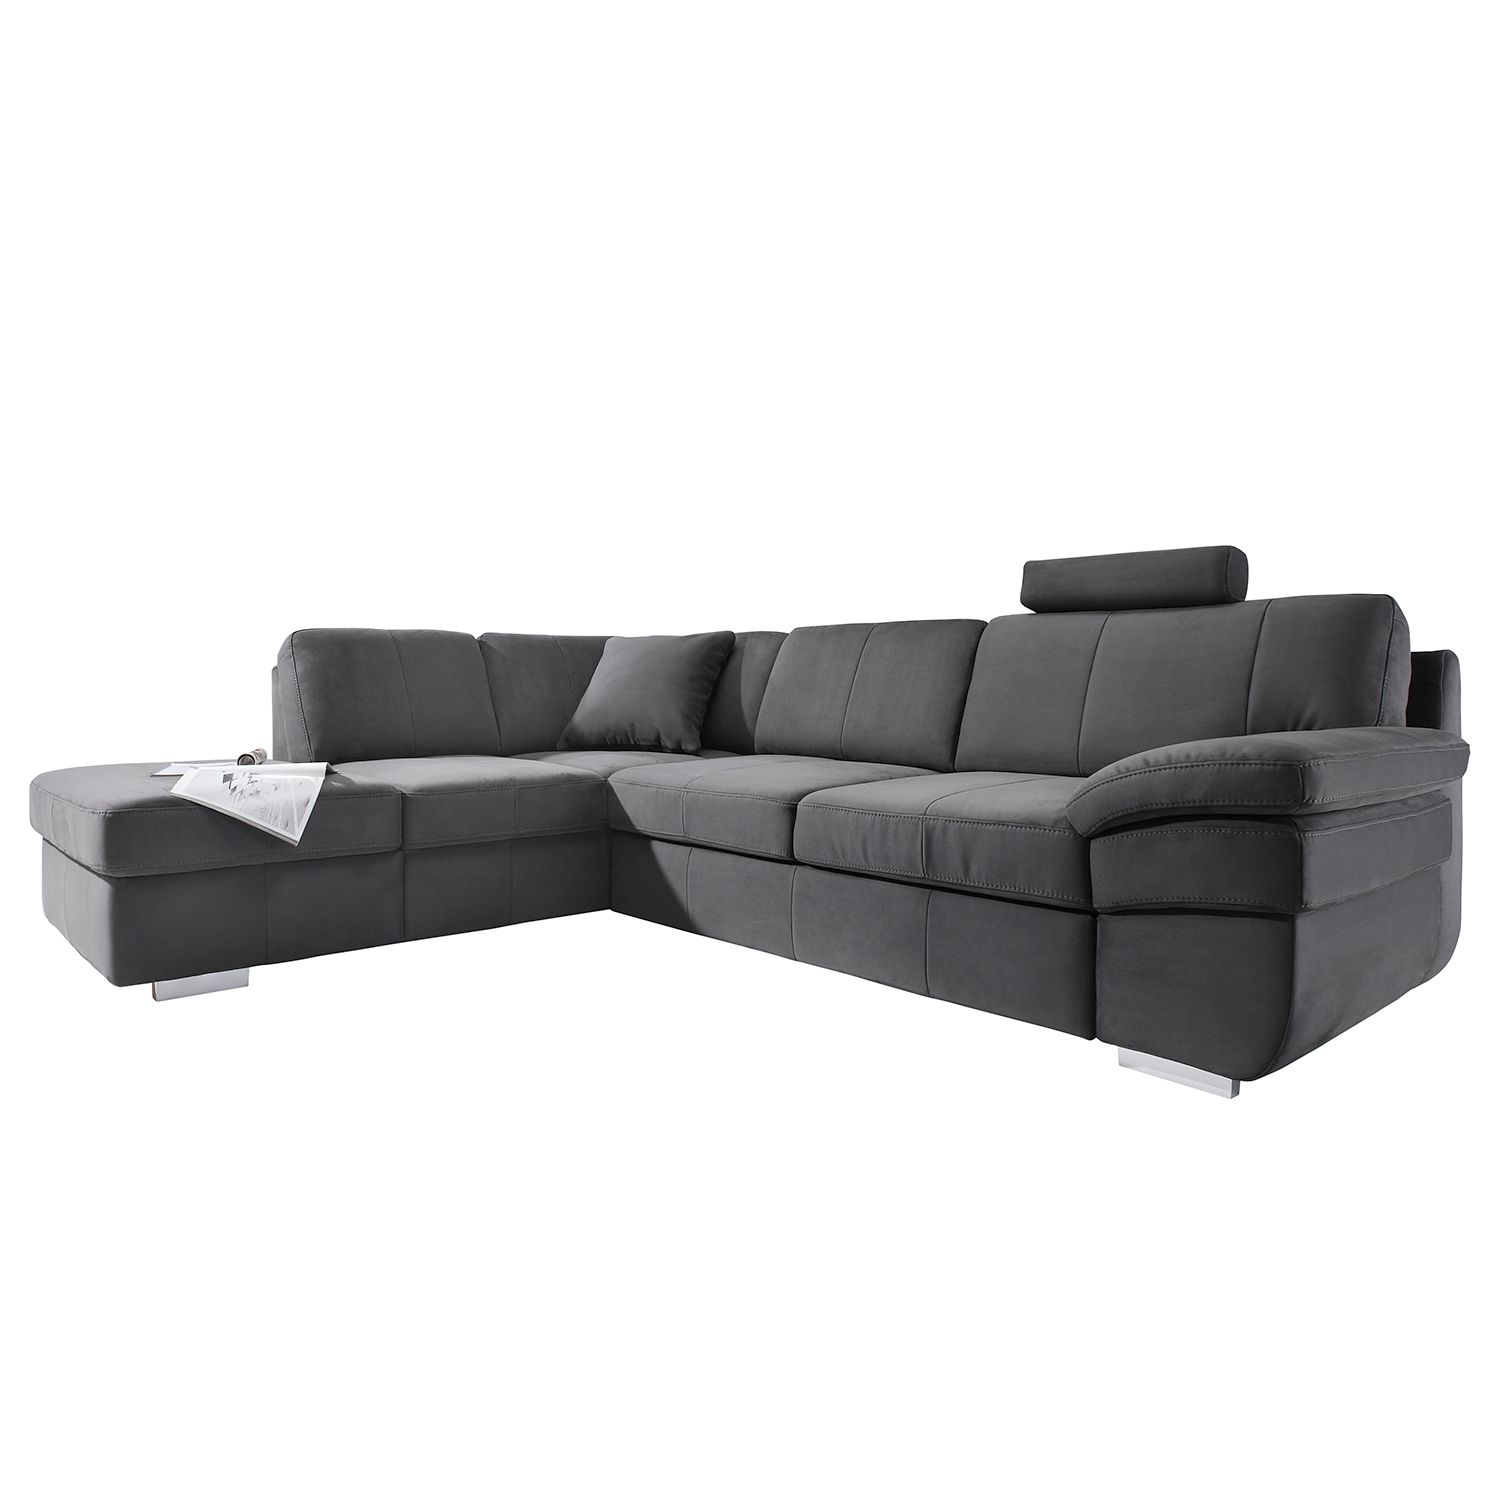 ecksofa eltham mit schlaffunktion microvelour longchair ottomane davorstehend links. Black Bedroom Furniture Sets. Home Design Ideas